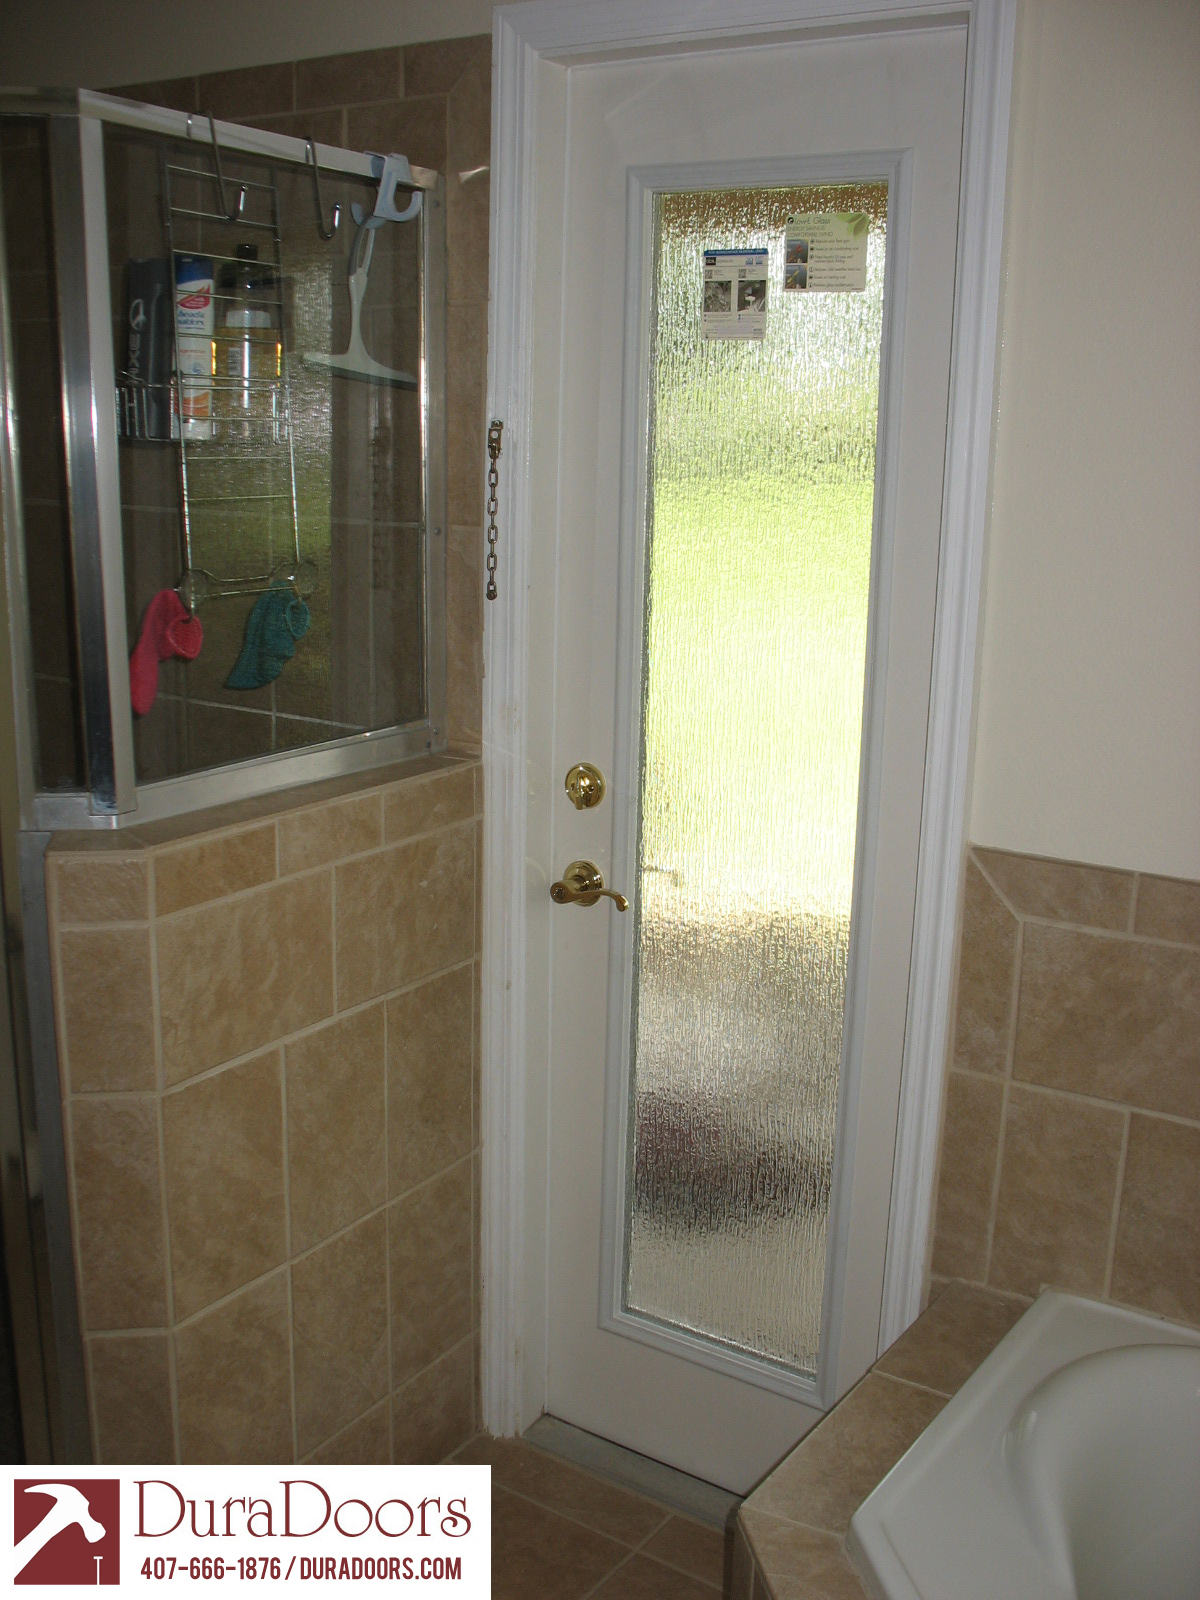 Door #1020. Rain & Bathroom Door with ODL Privacy Rain Glass | DuraDoors